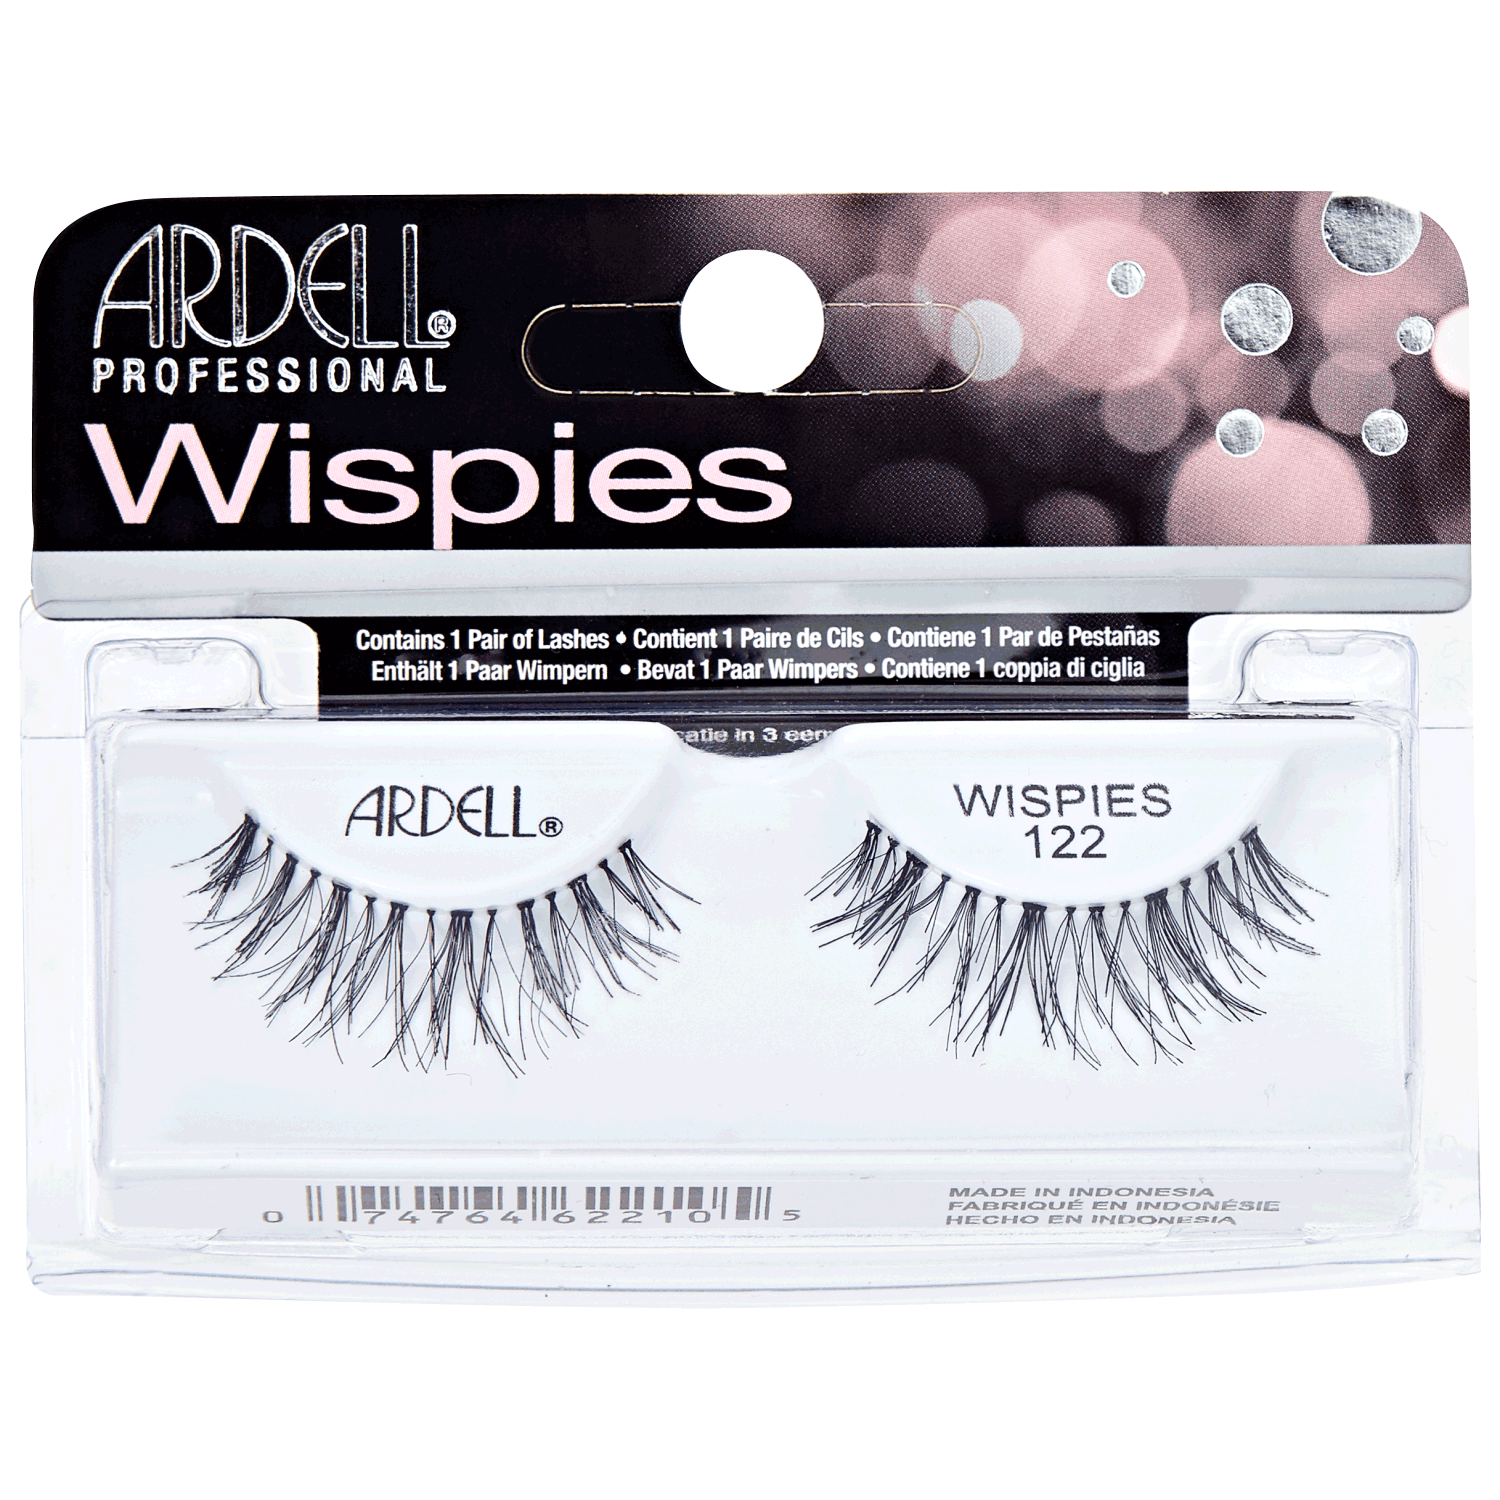 122 wispies lashes by ardell